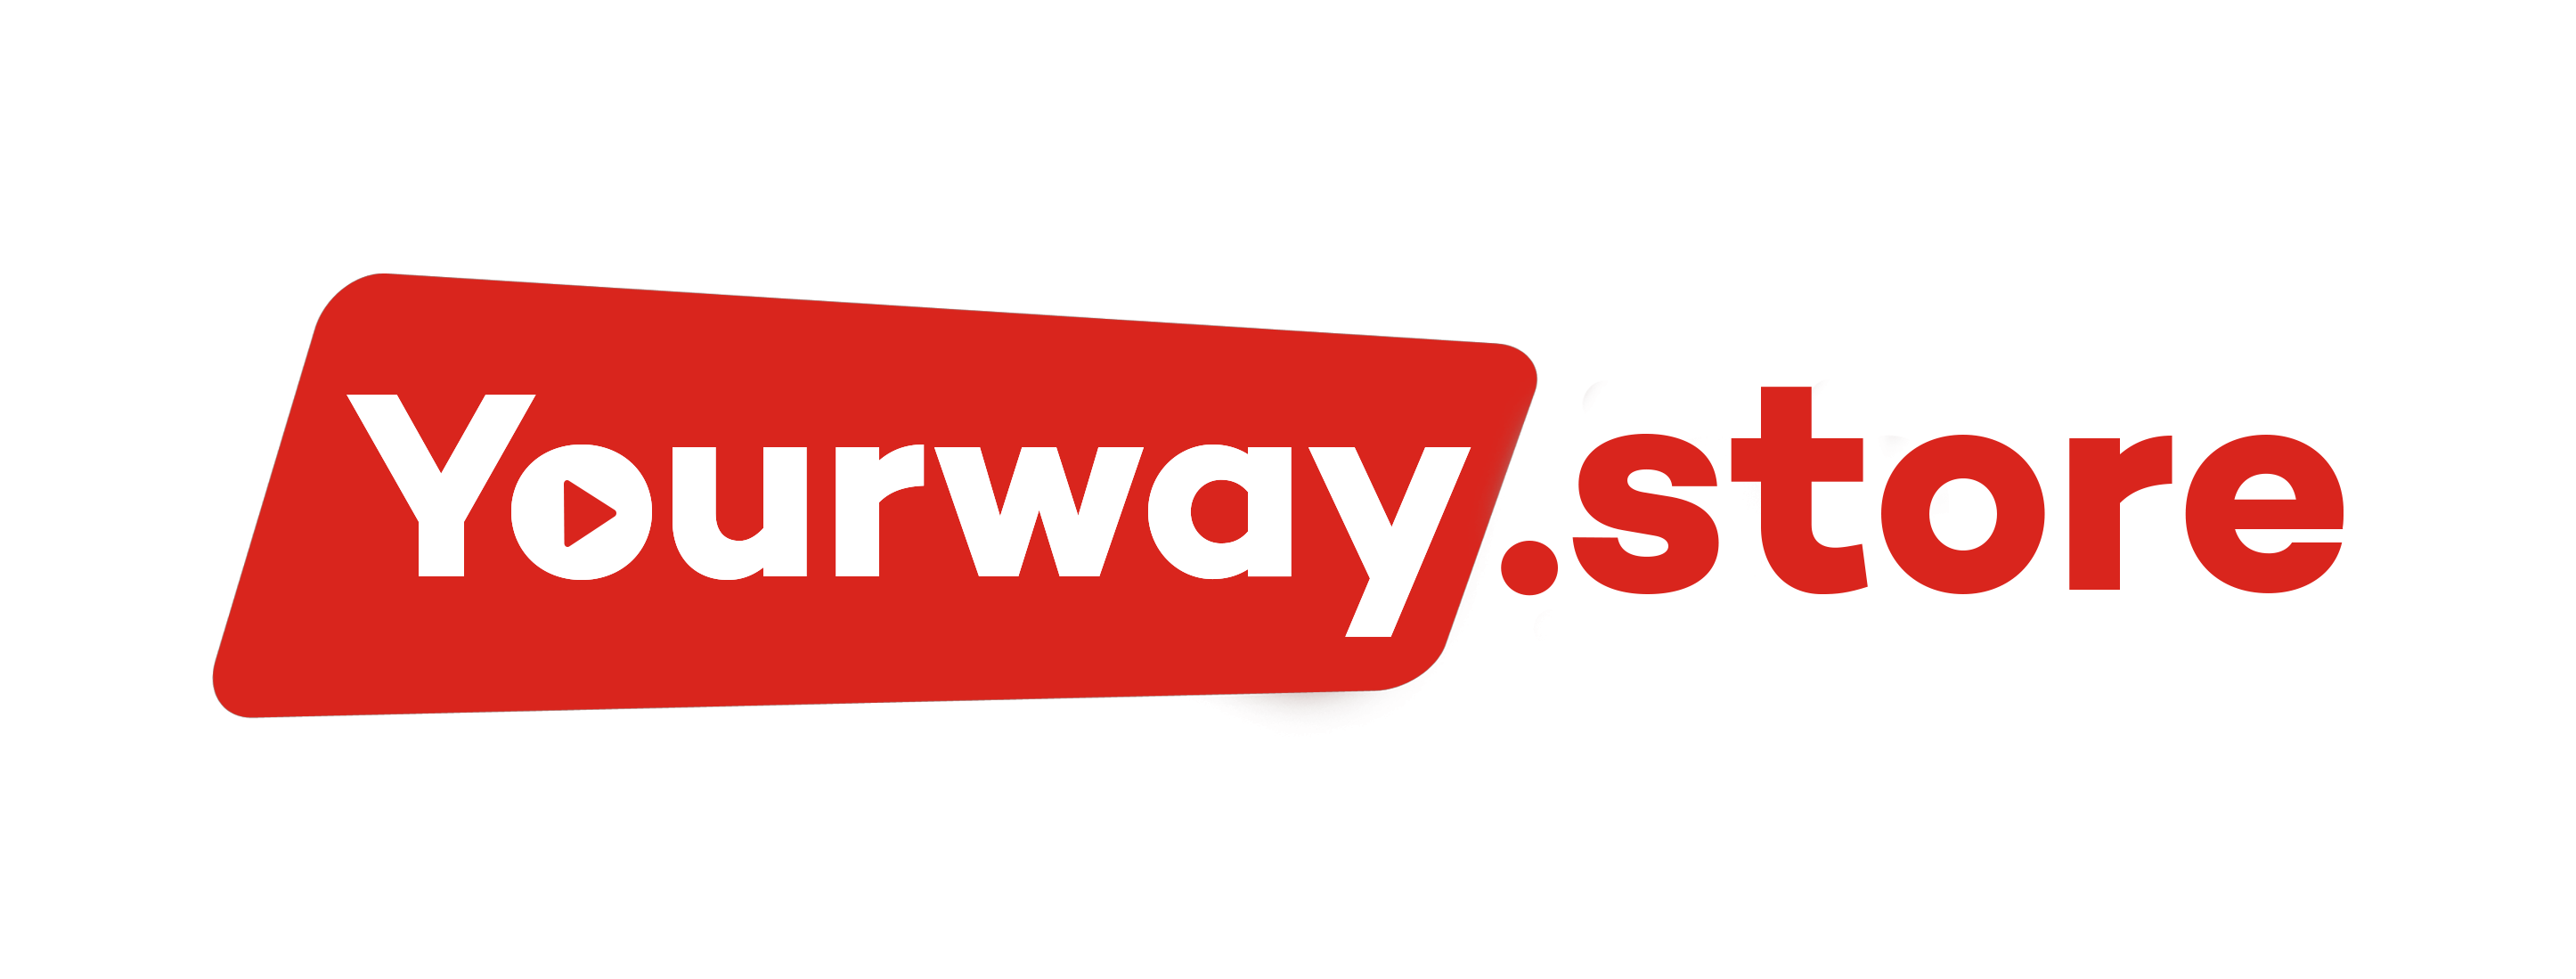 Your Way Video Ecommerce Store